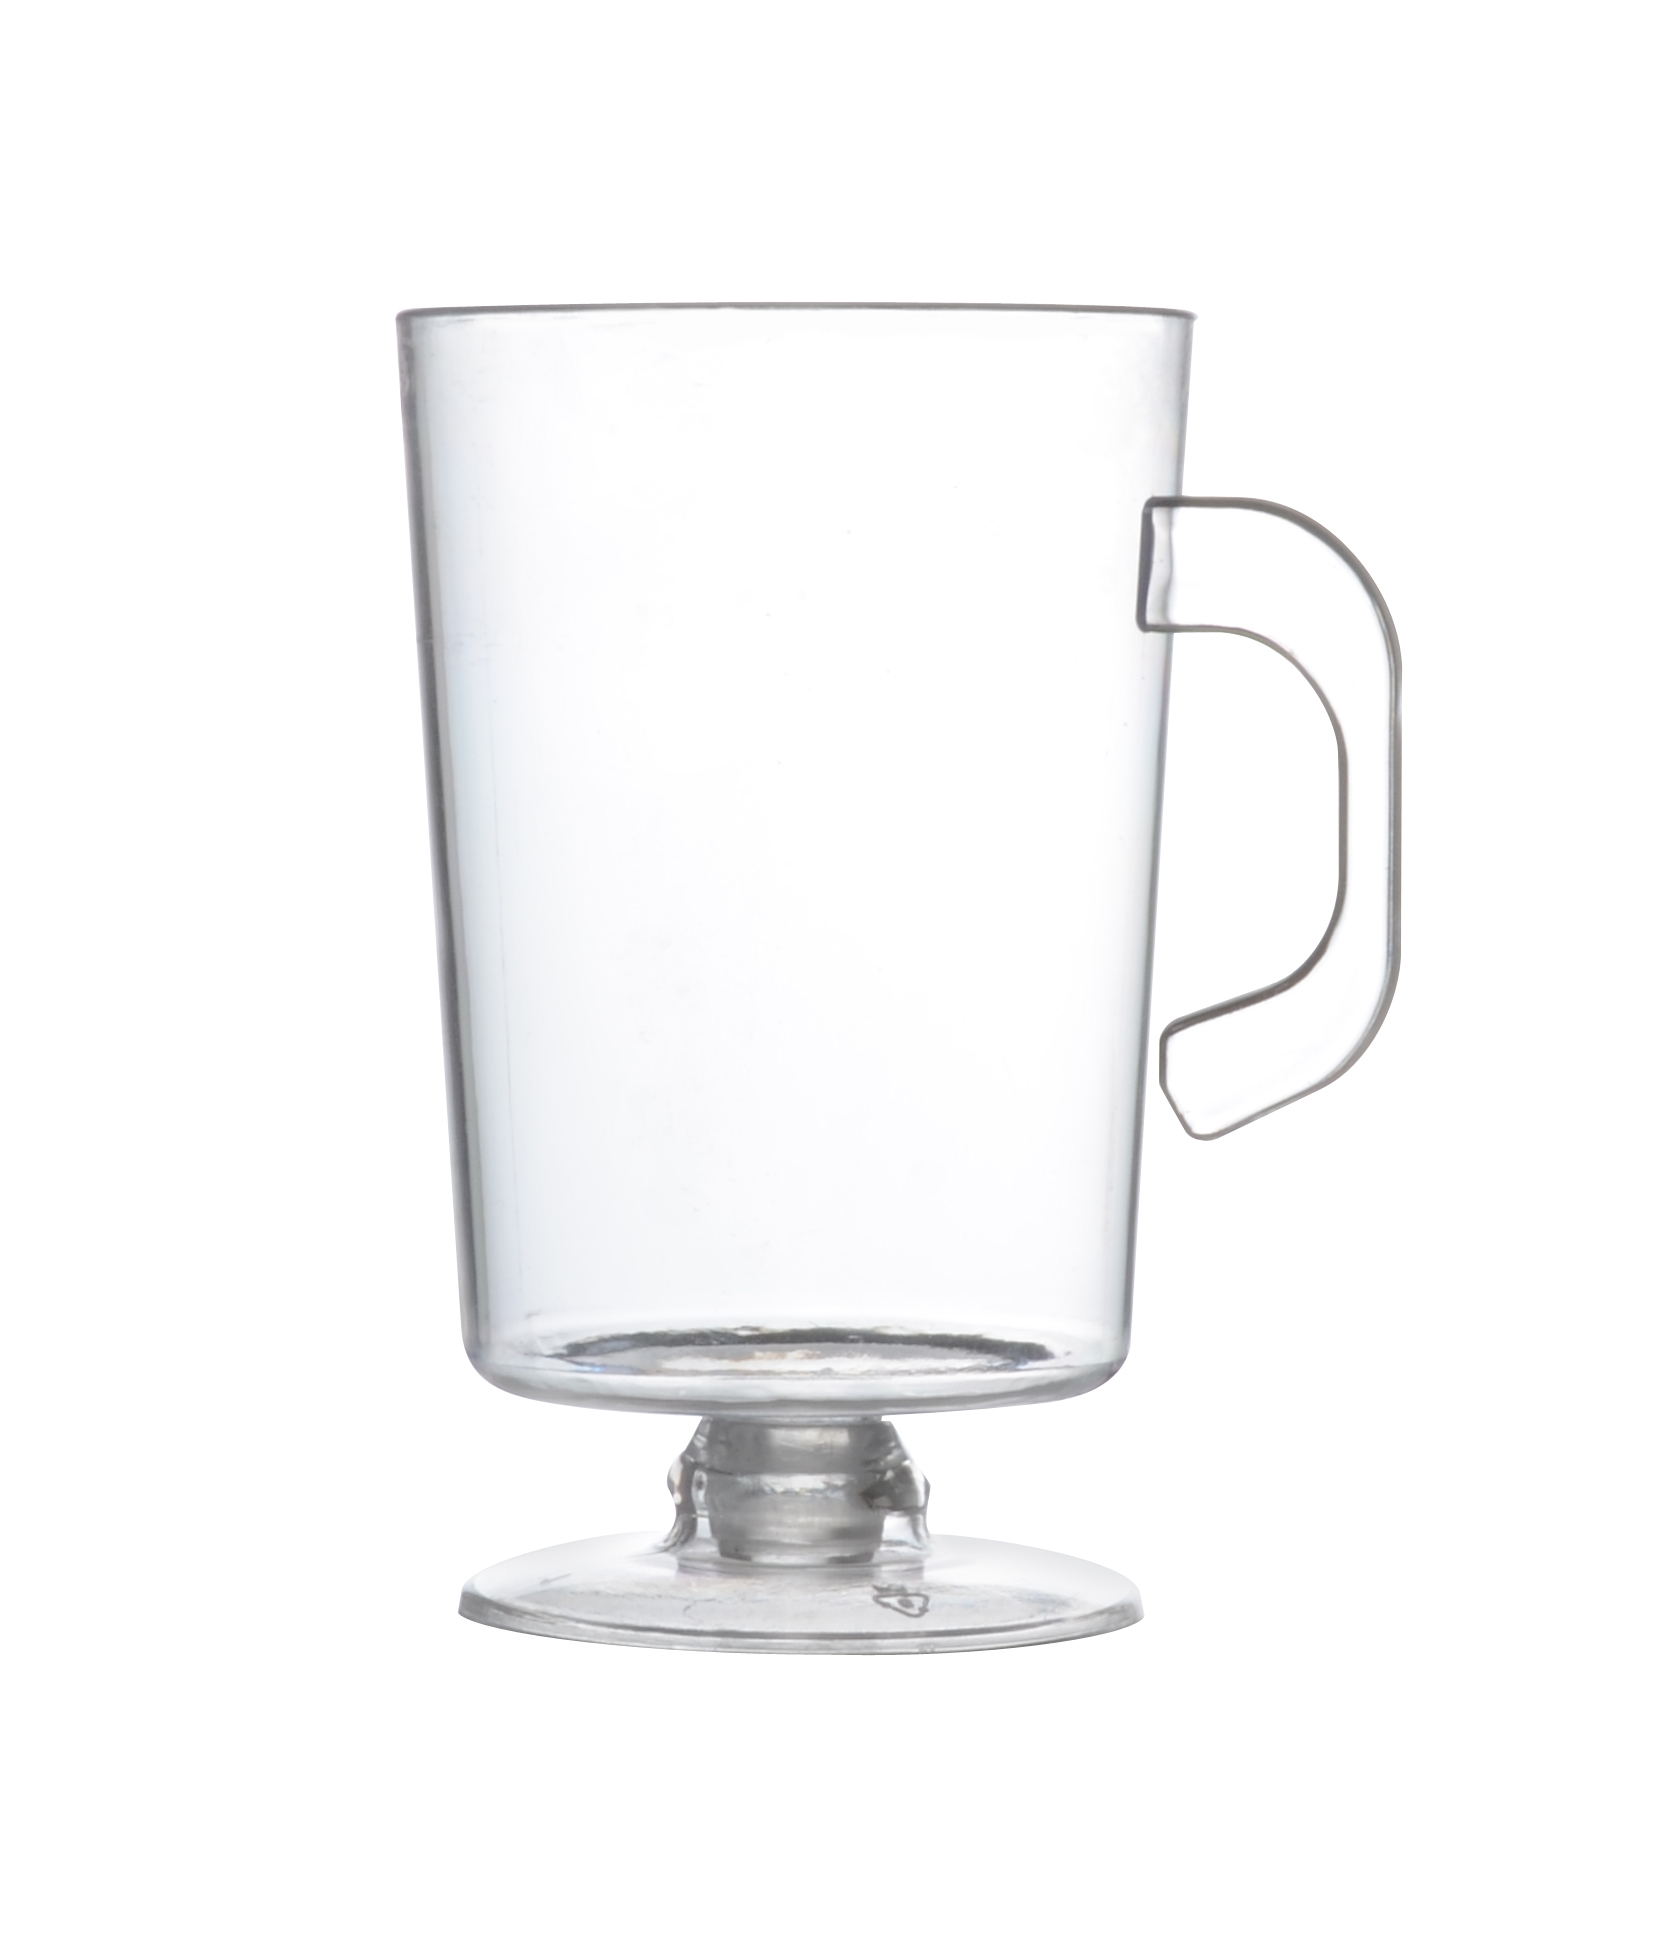 Fineline Settings Clear 2oz Tiny Espresso Mug 6416